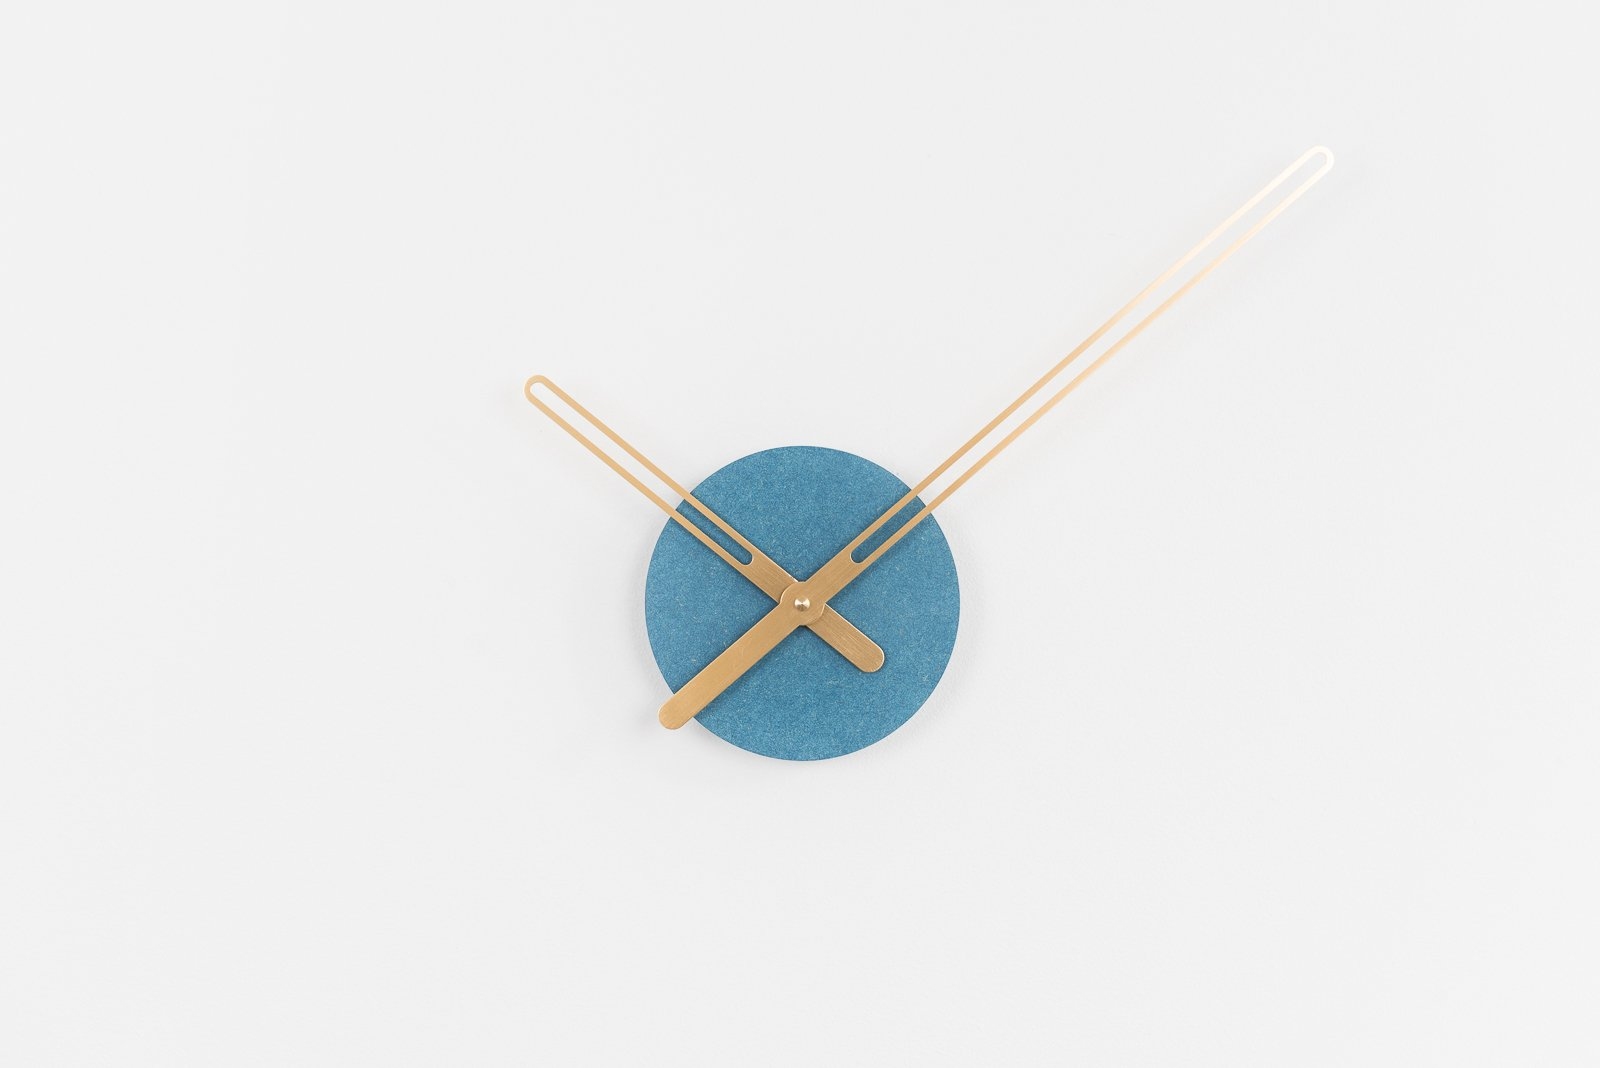 Sweep Wall Clock, The Blue Ocher Series with Brass Clock Hands, Minimalist Scandinavian Design Wall Decor Clock by Christopher Nordahl Konings